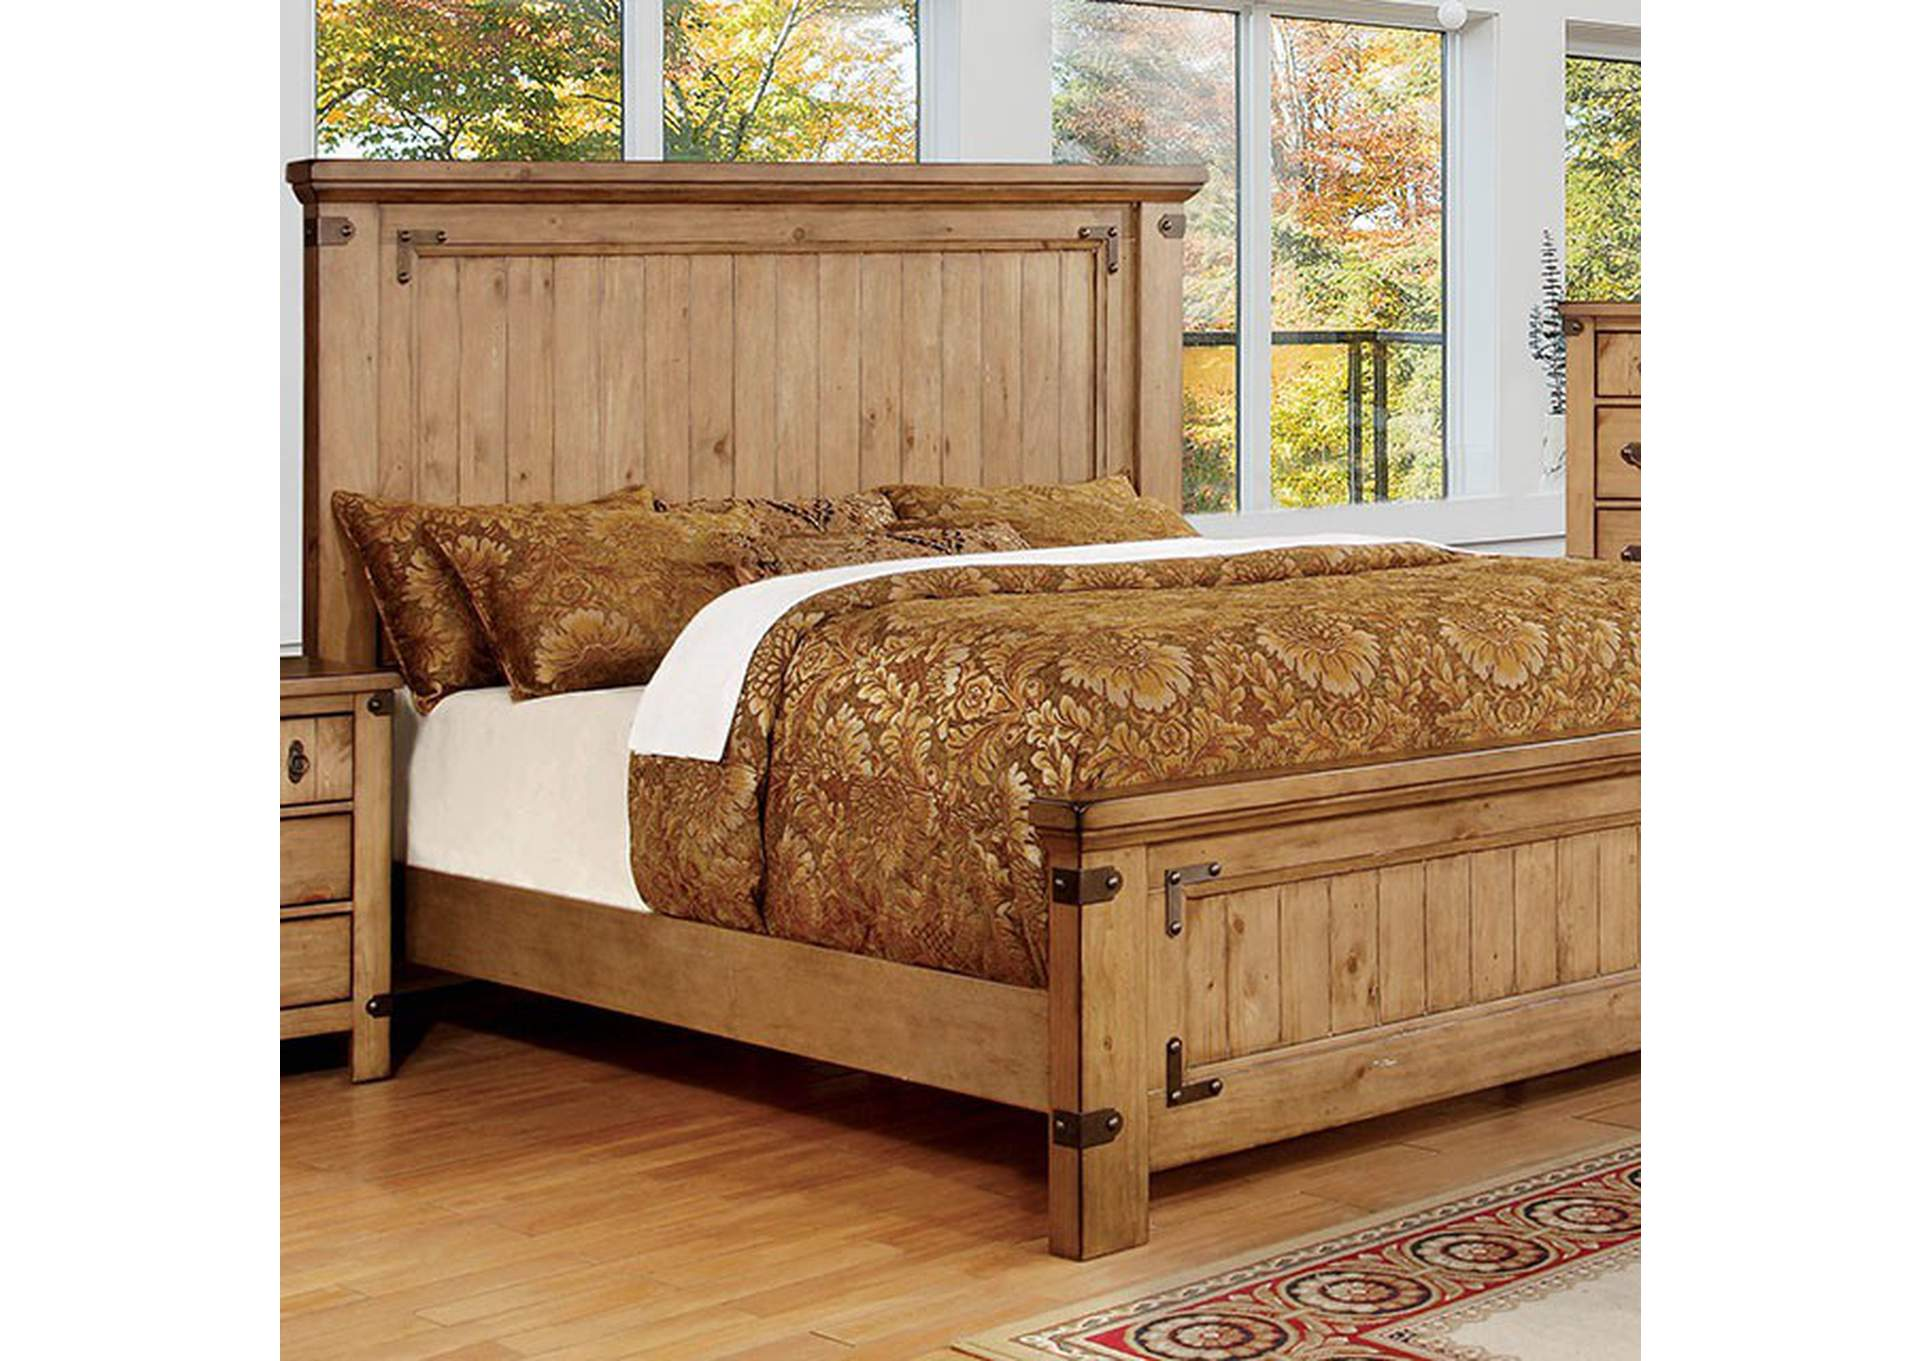 Pioneer Weathered Elm Queen Bed,Furniture of America